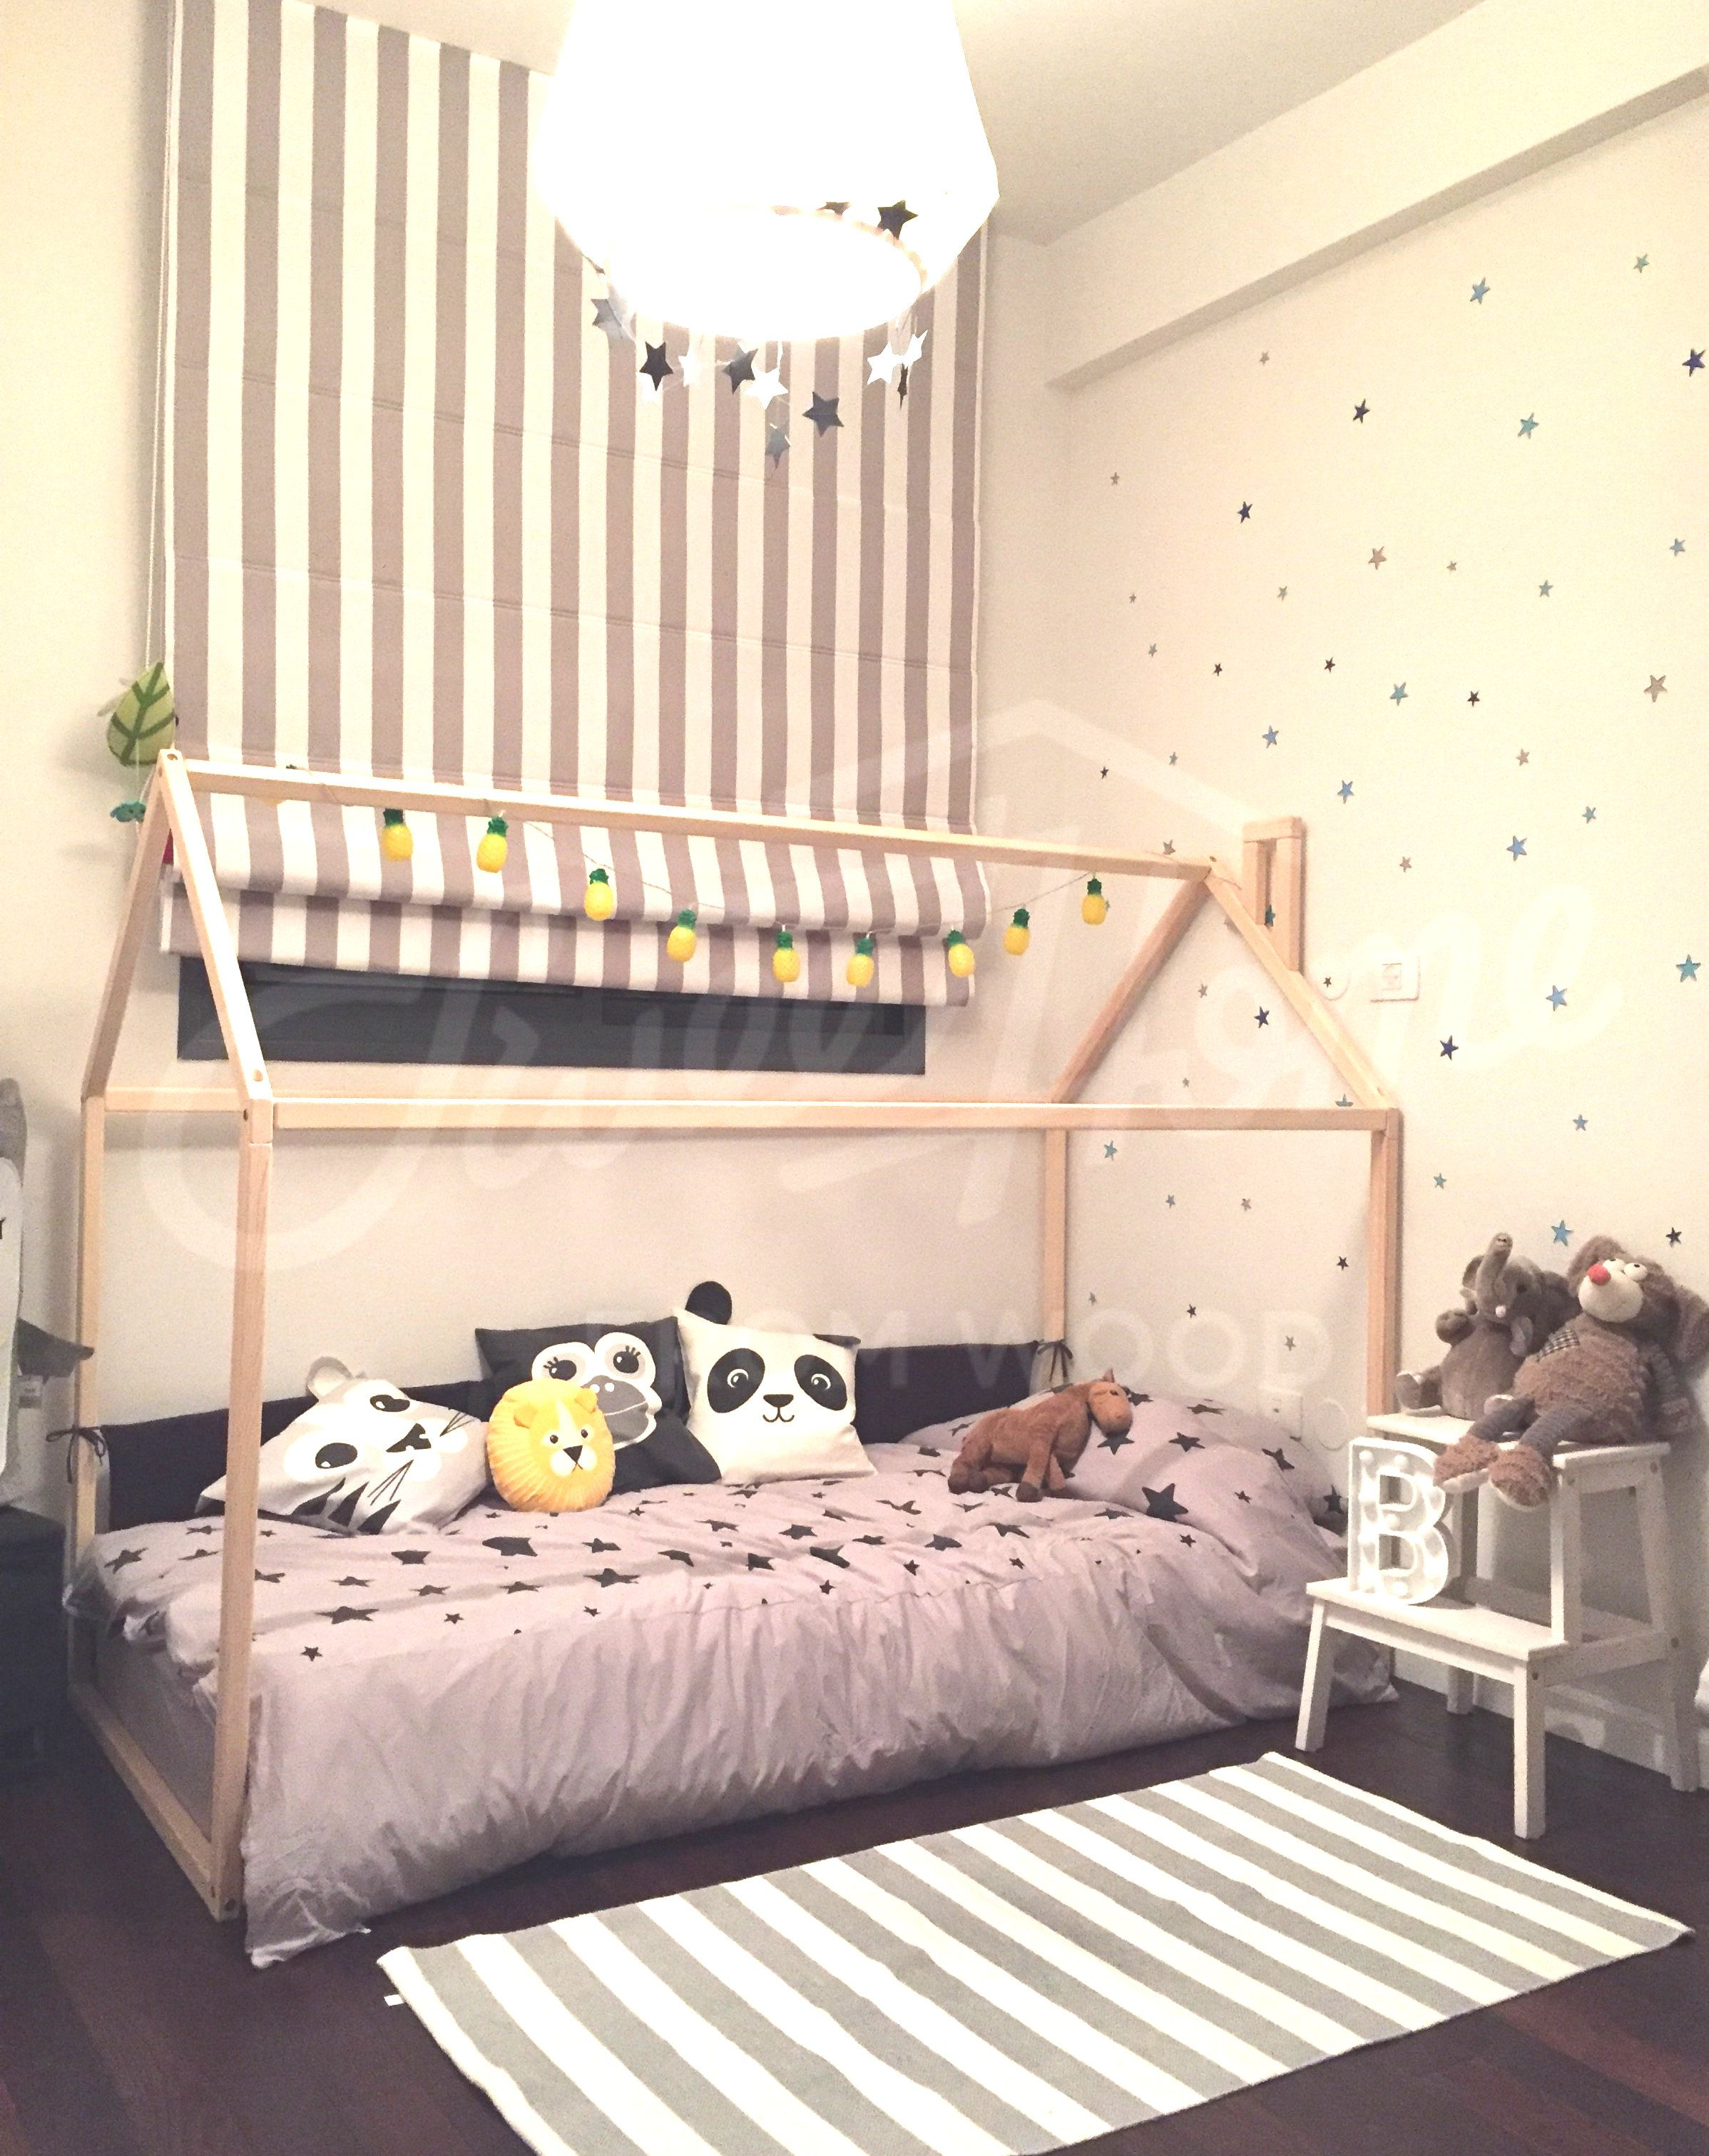 Kids Room, Toddler Bed, House Bed, Tent Bed, Children Bed,